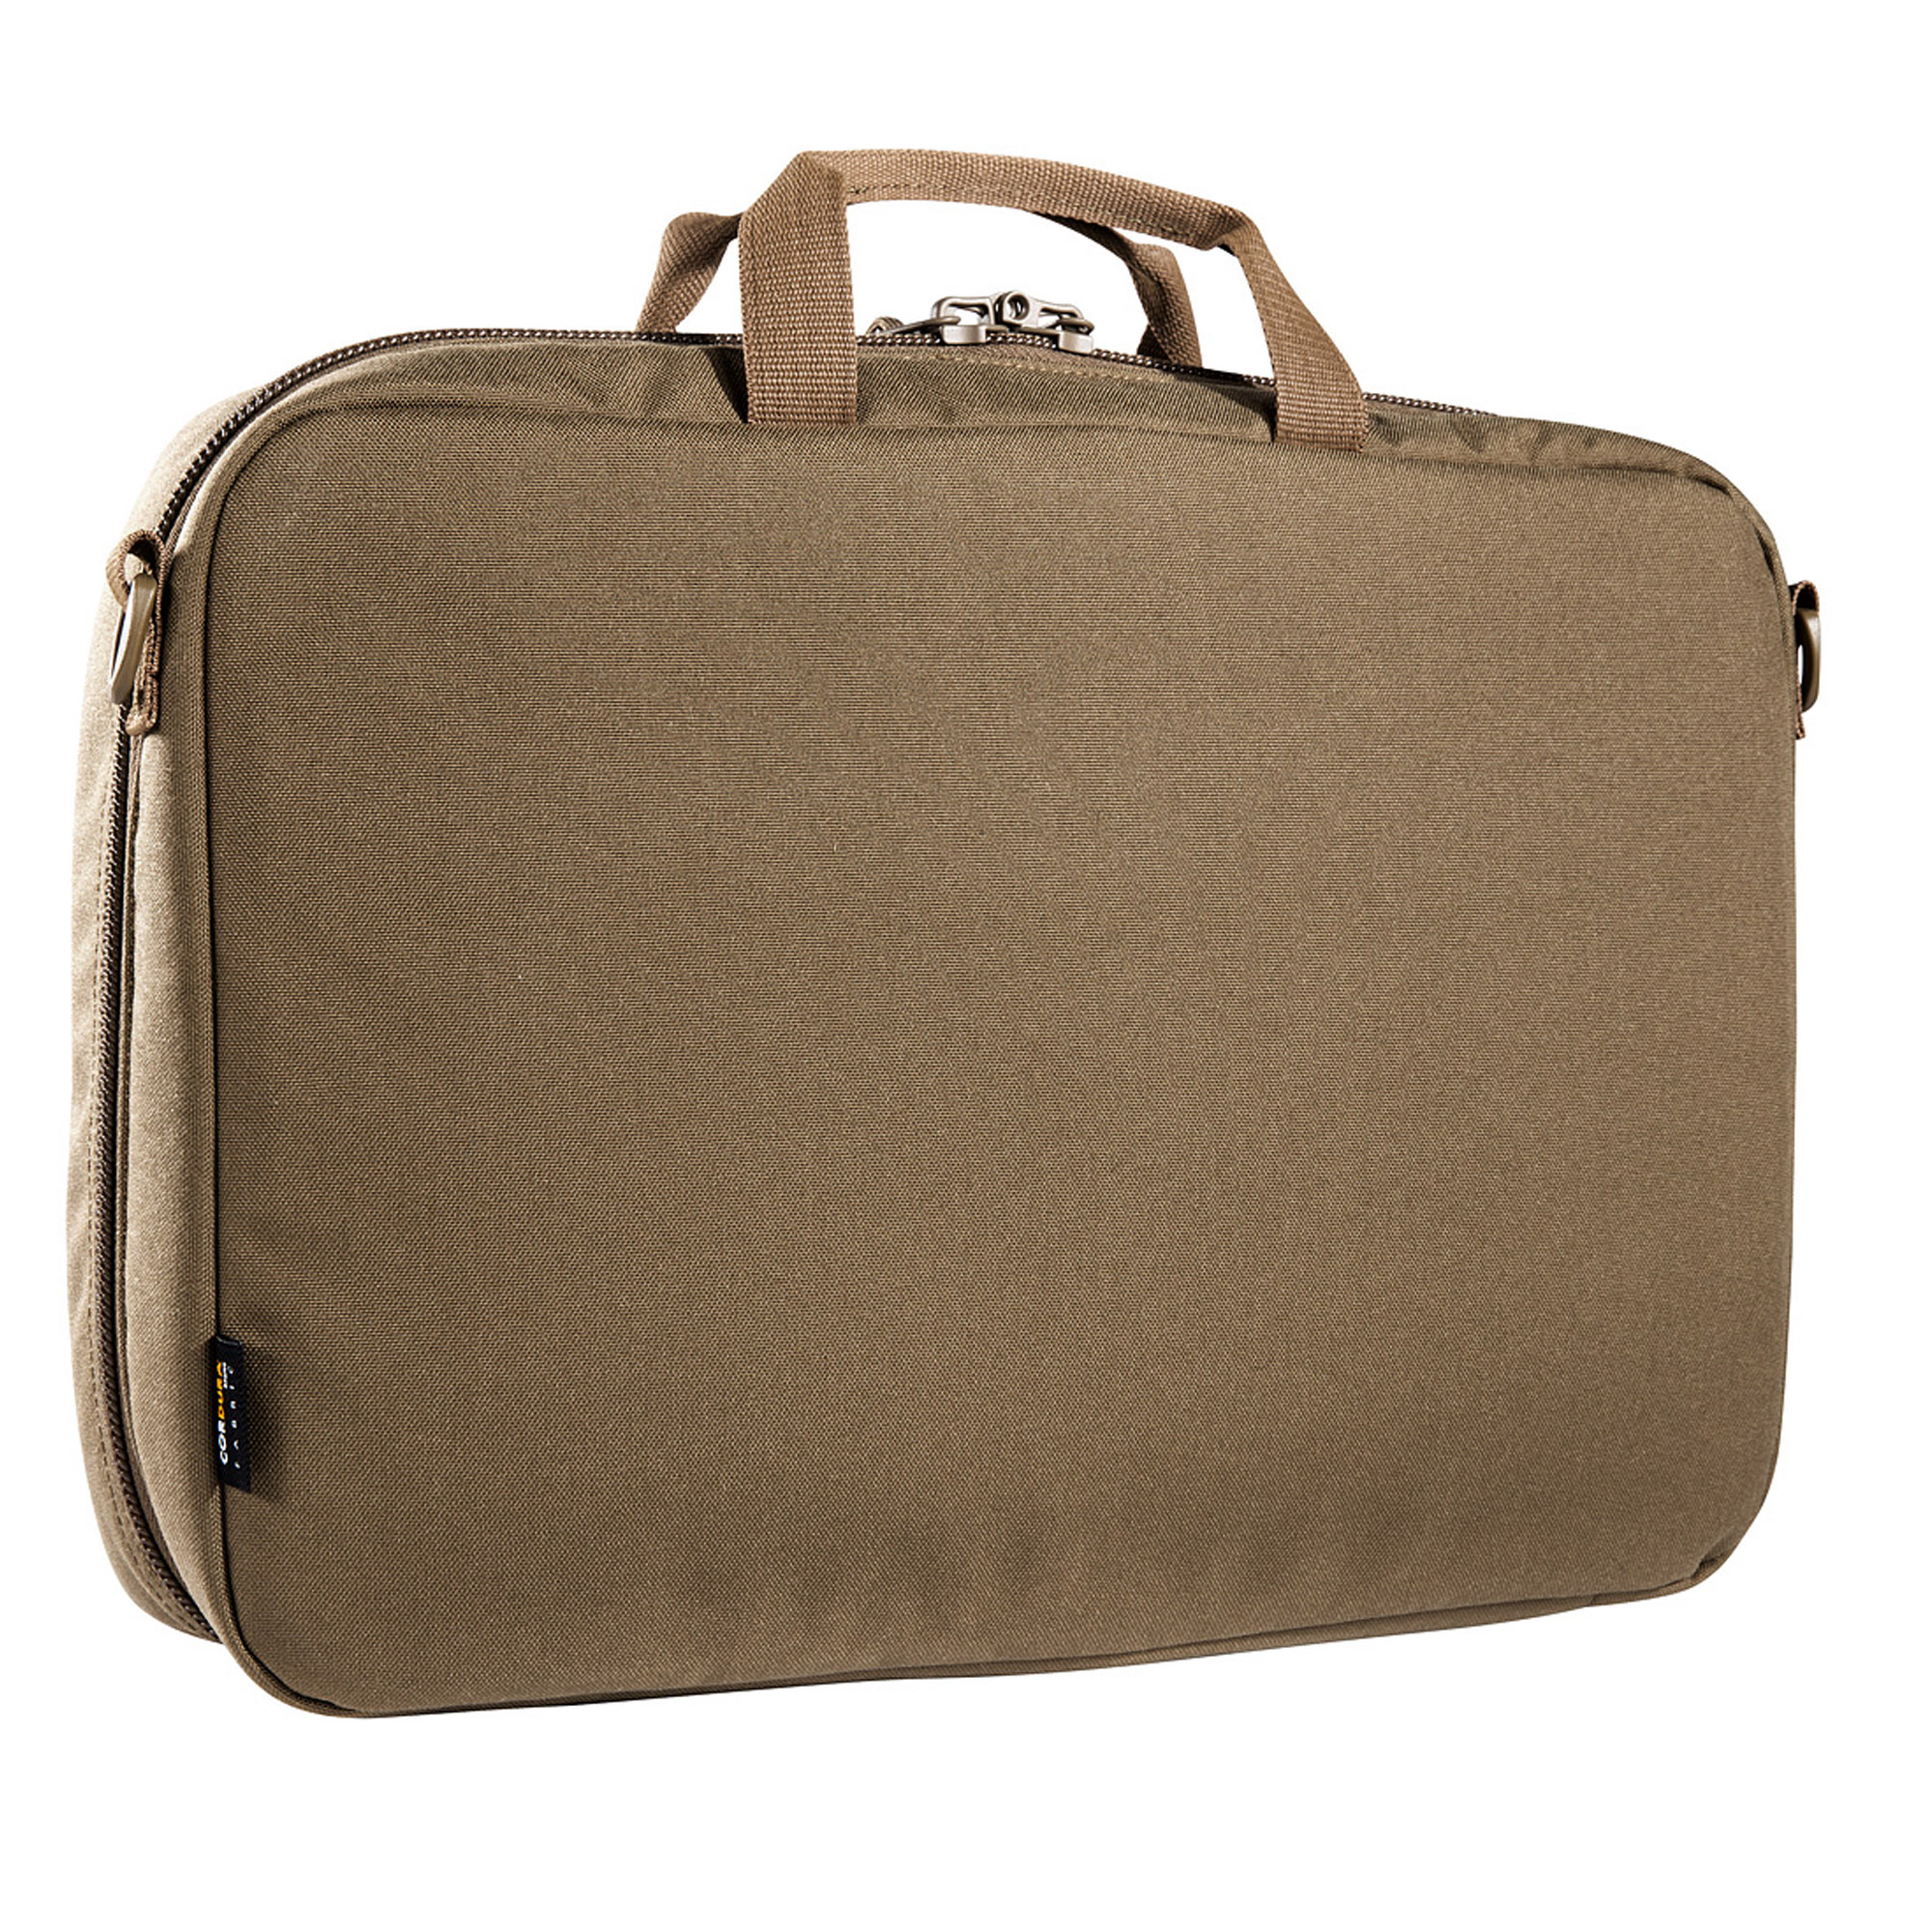 Tasmanian Tiger Modular Pistol Bag coyote brown